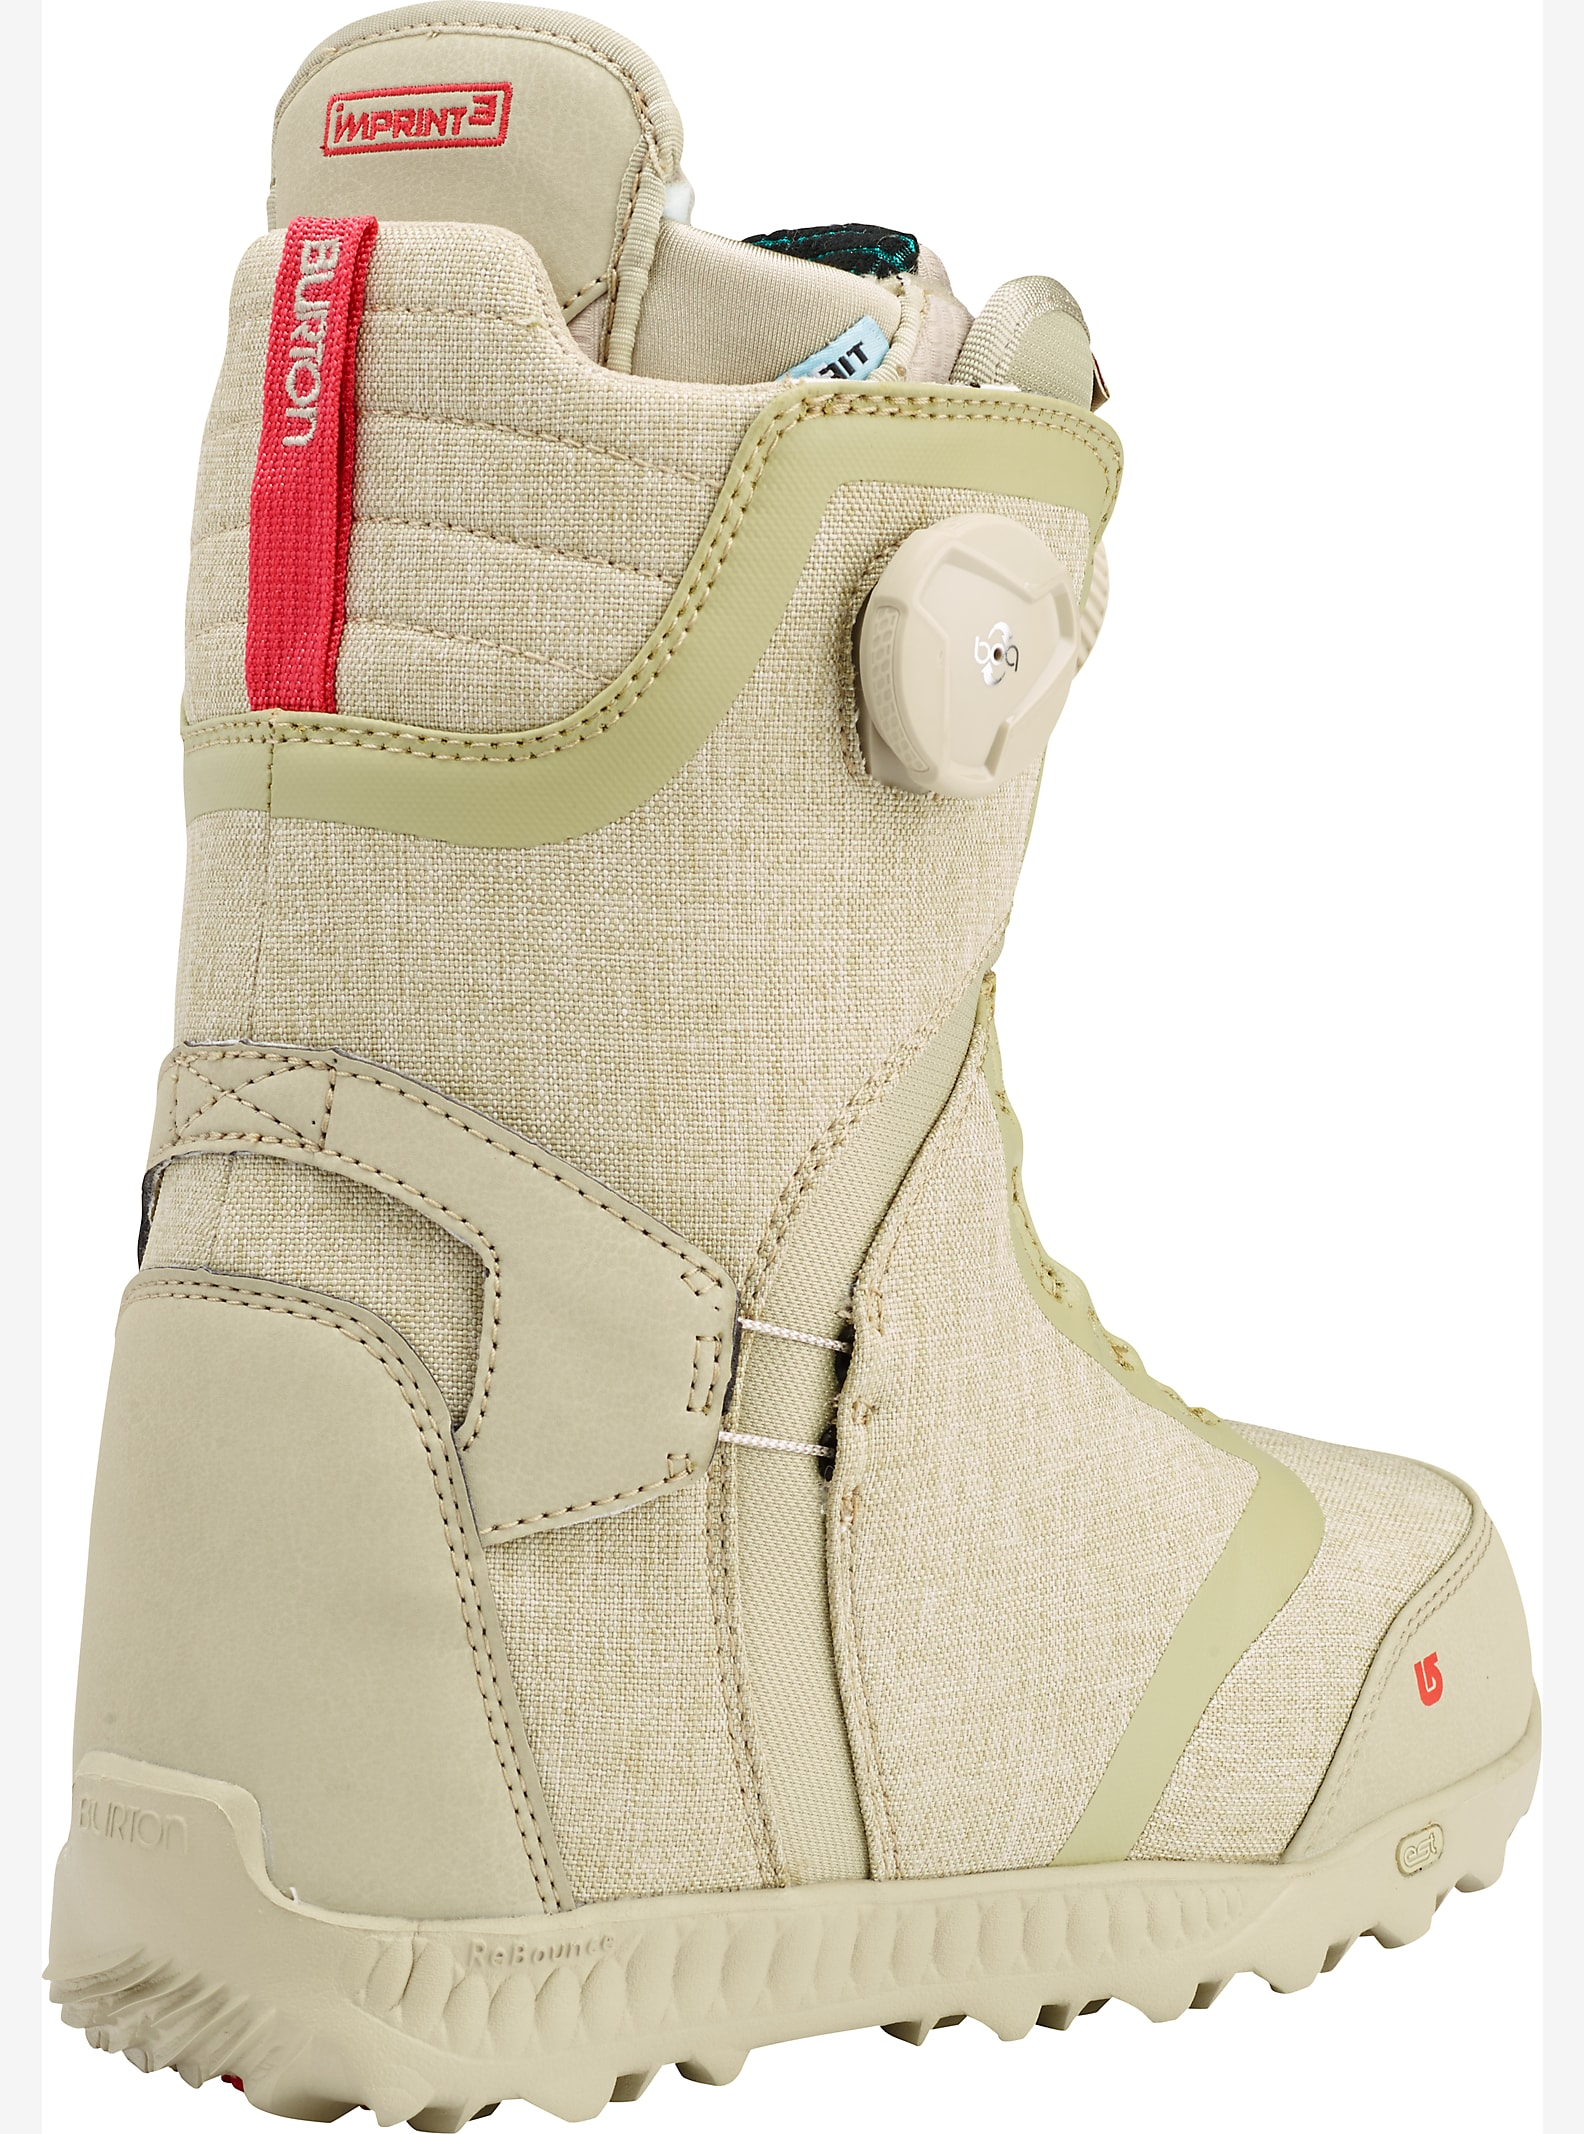 Burton Felix Boa® Snowboard Boot shown in Desert Rose